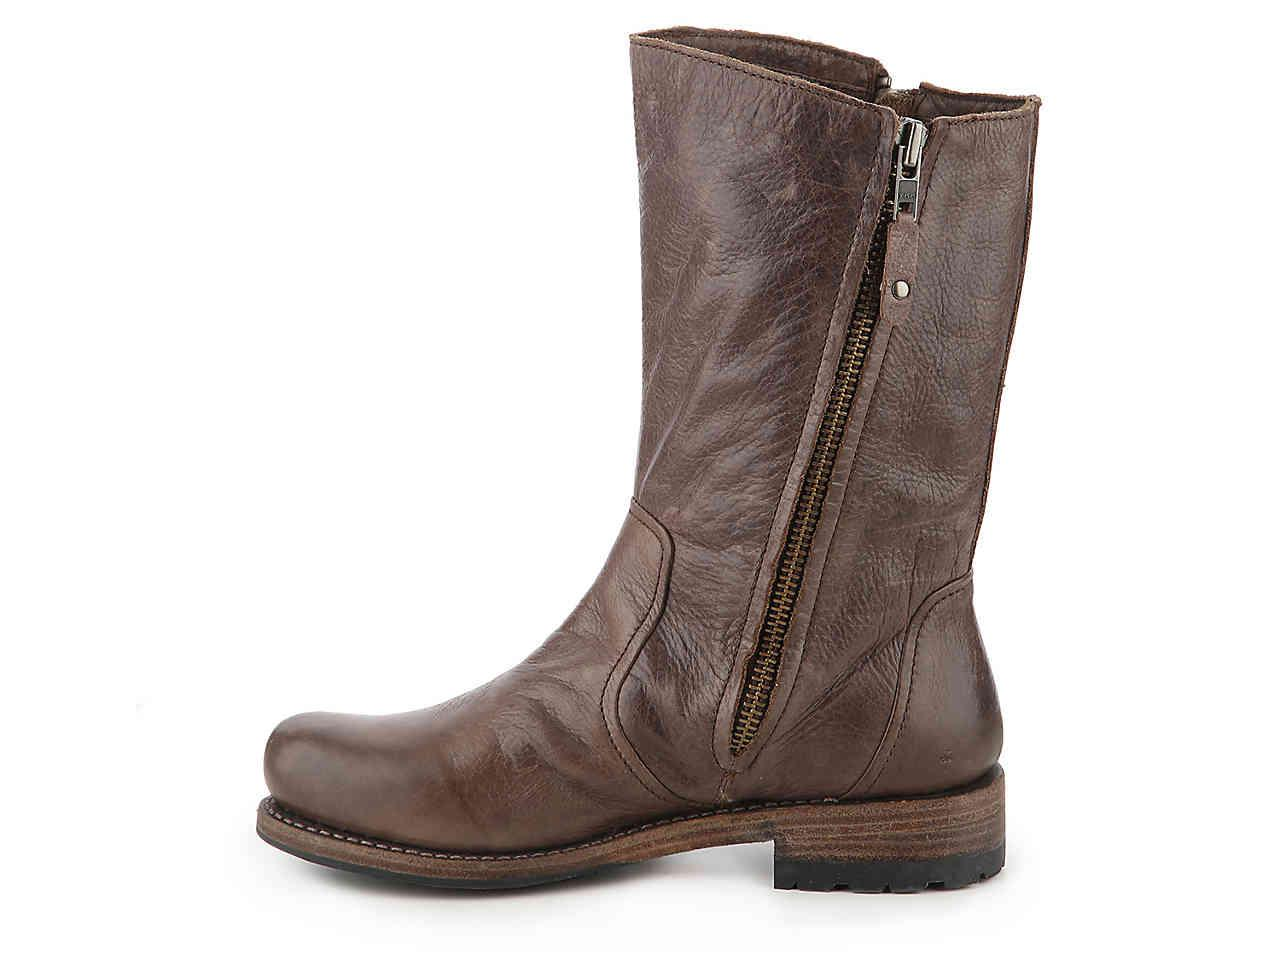 Blackstone Leather Kl87 Boot in Brown